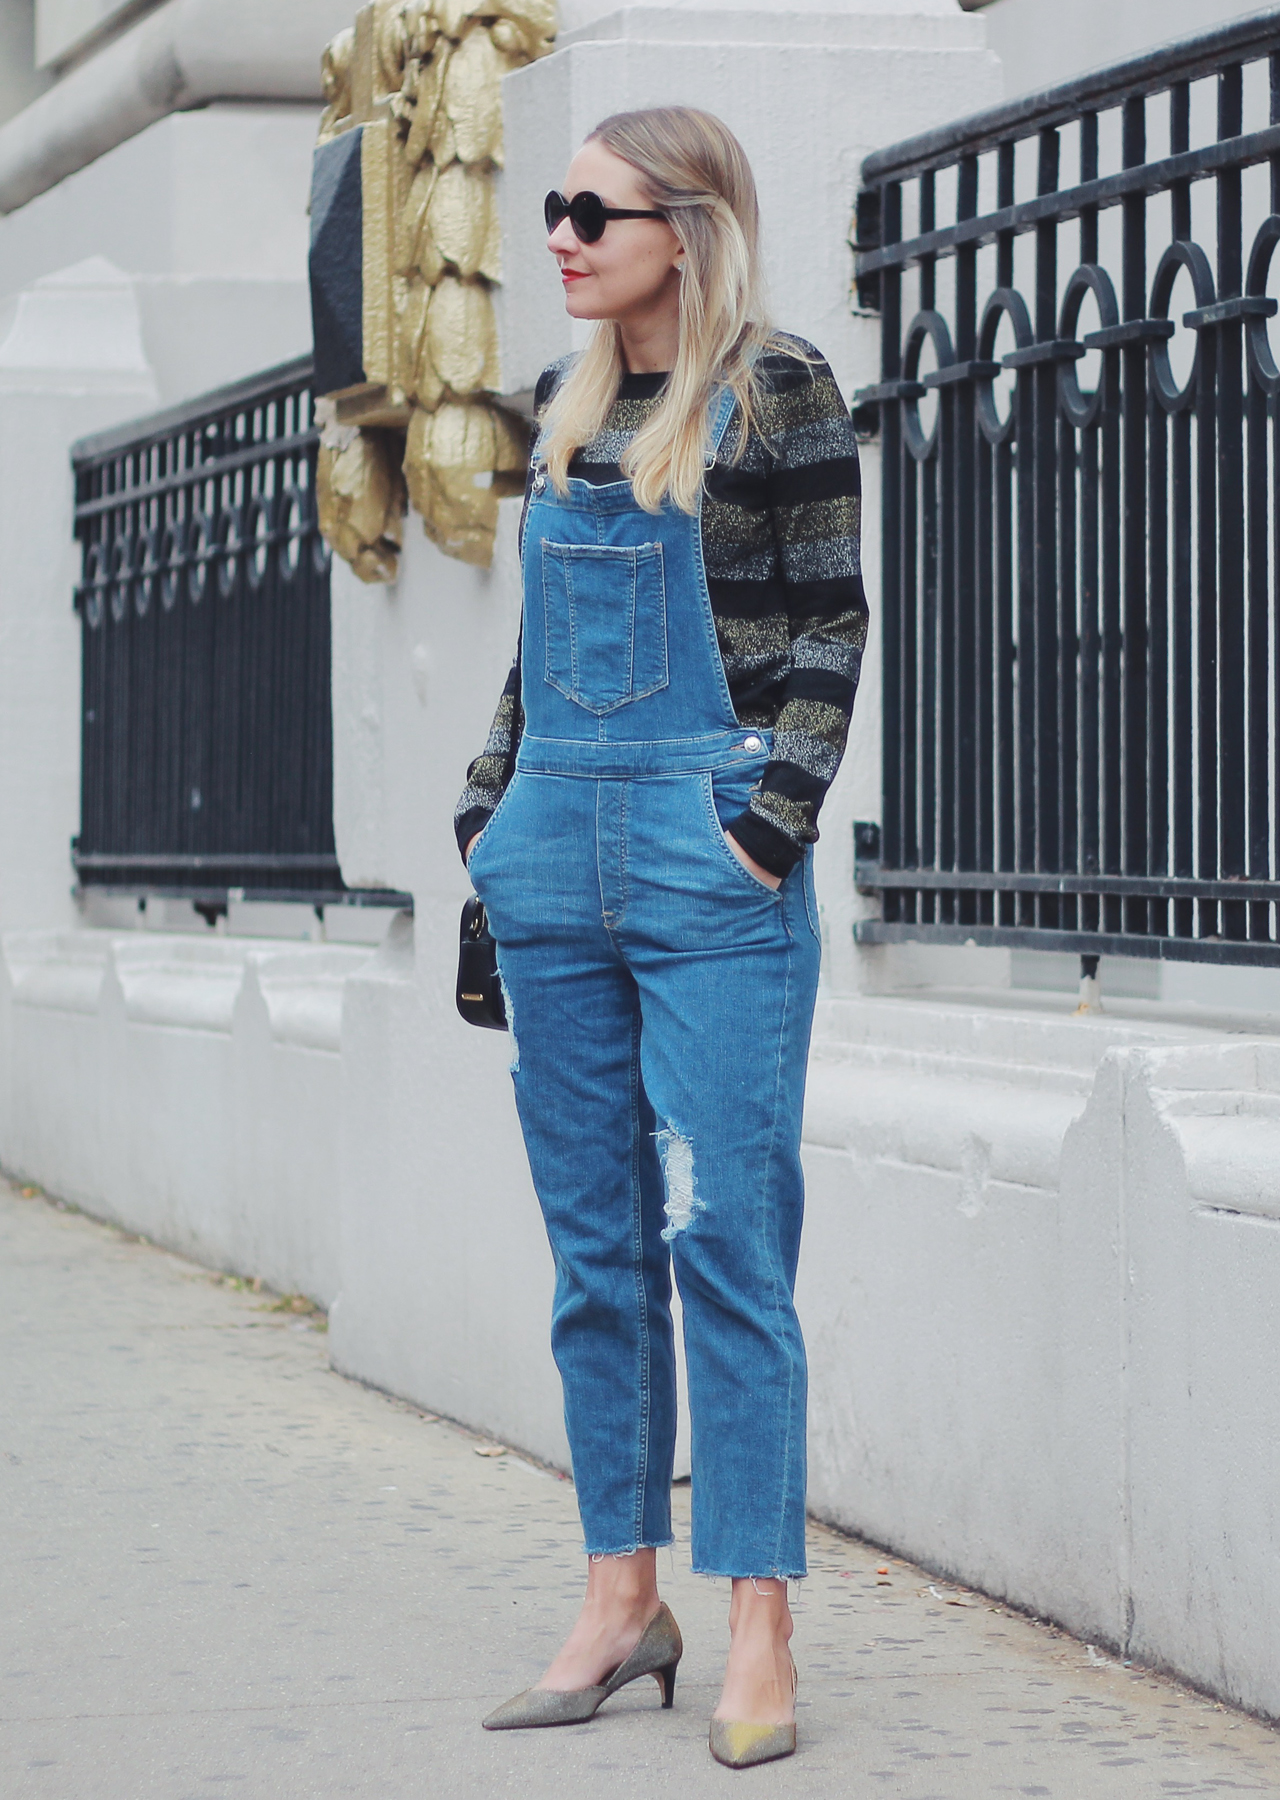 The Steele Maiden: Casual Holiday Outfit Ideas - overalls and metallic sweater